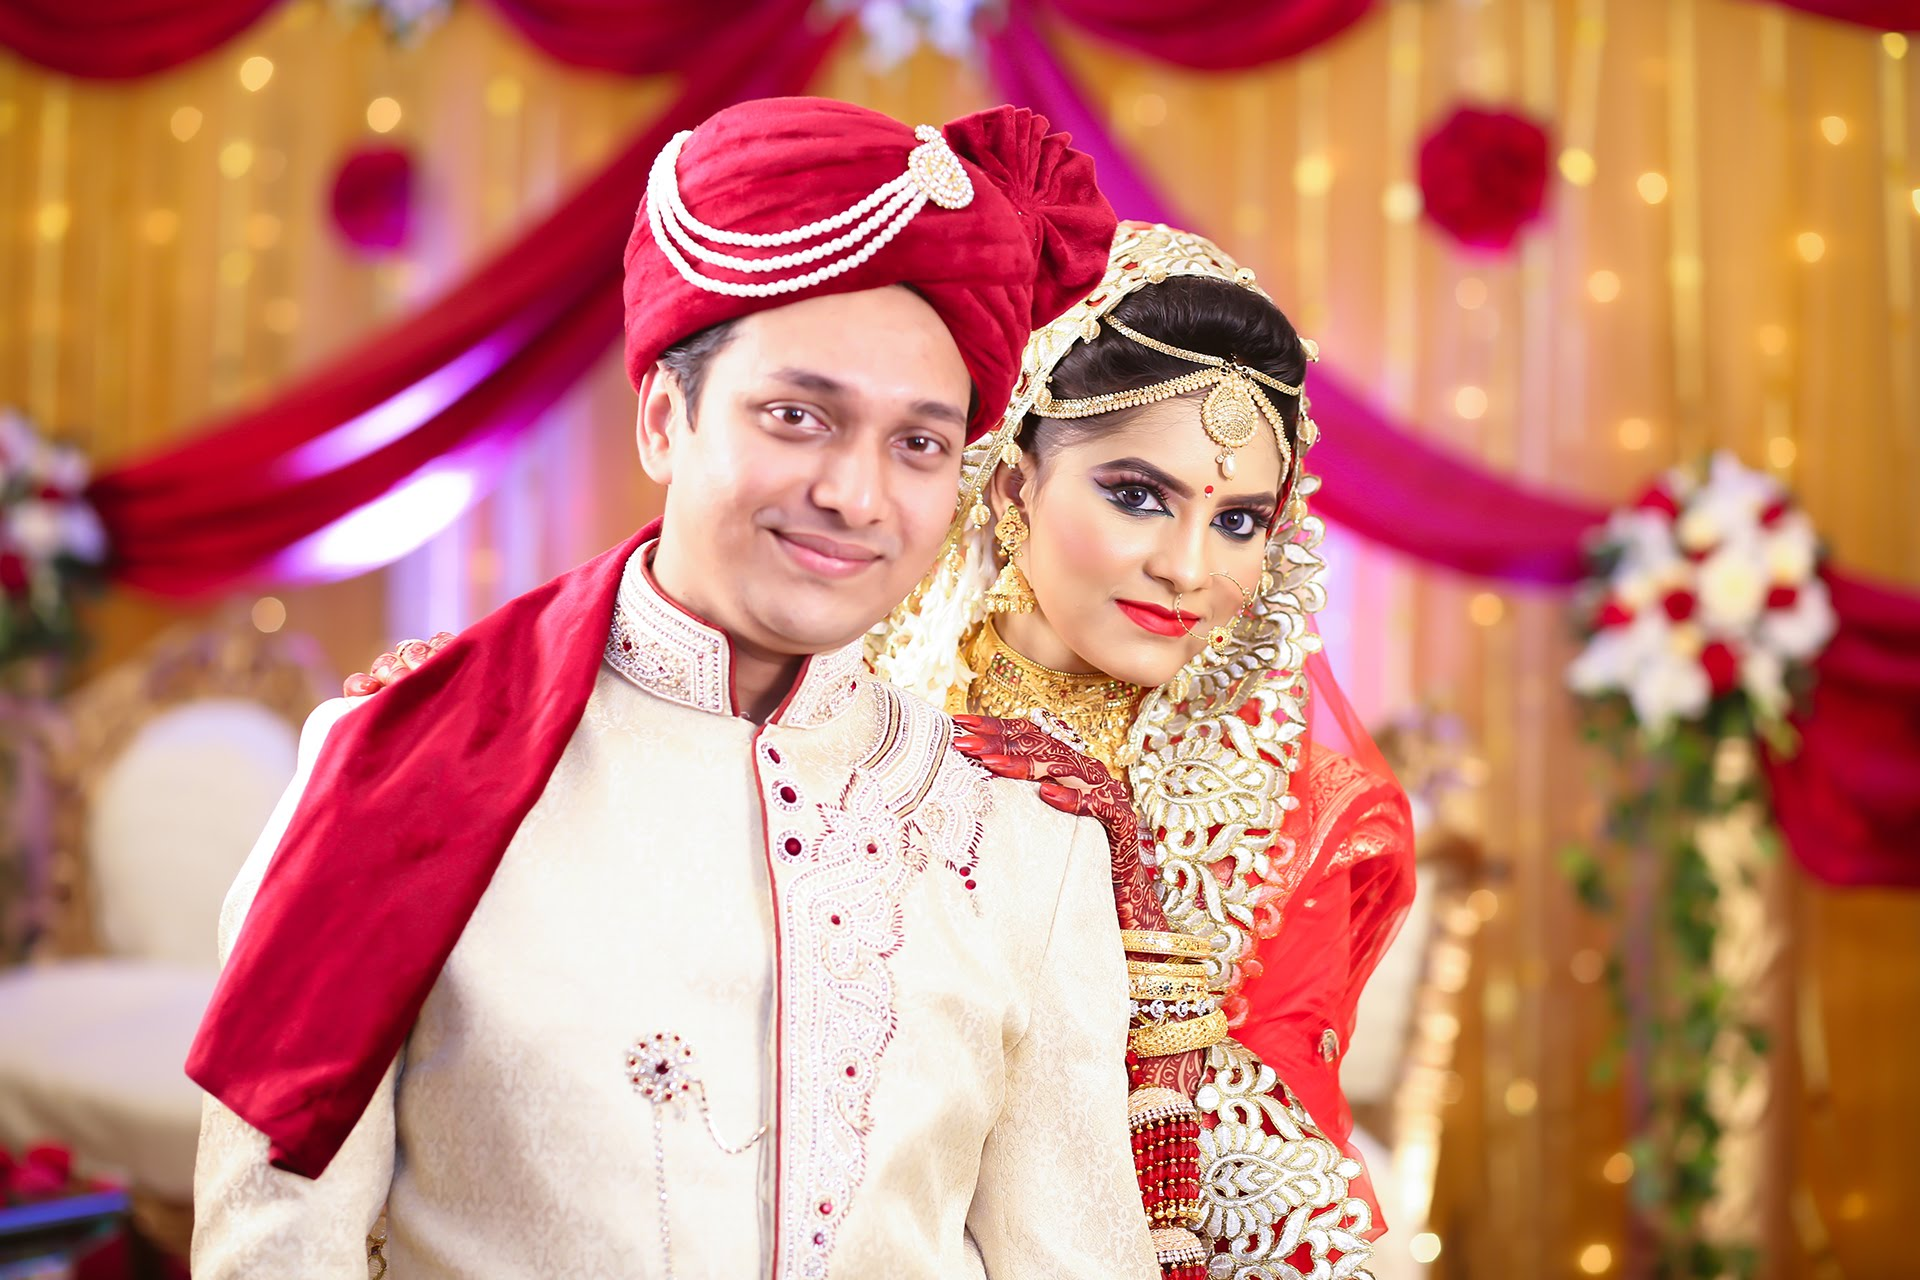 Top Most Beautiful Muslim Couples Islamic Wedding Pictures Muslim Marriage Couple 542103 Hd Wallpaper Backgrounds Download